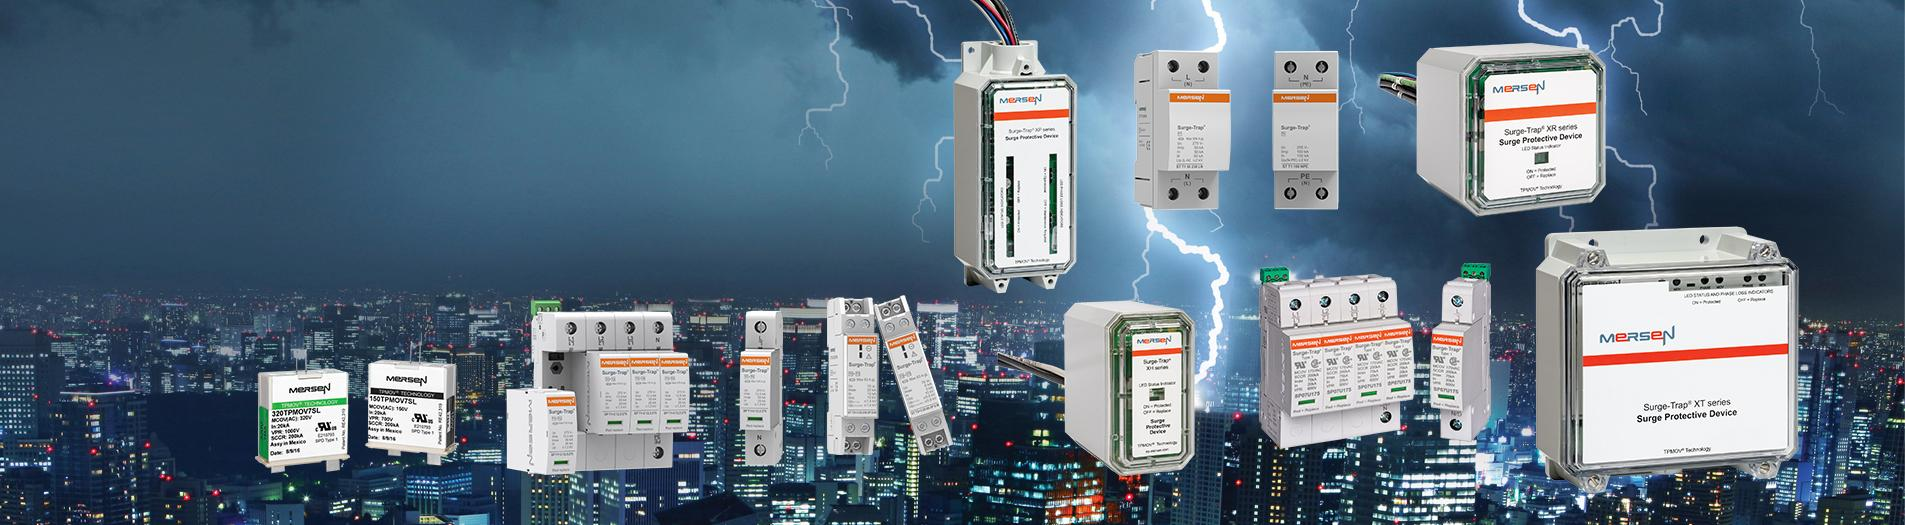 Home page banner showing global surge protection products